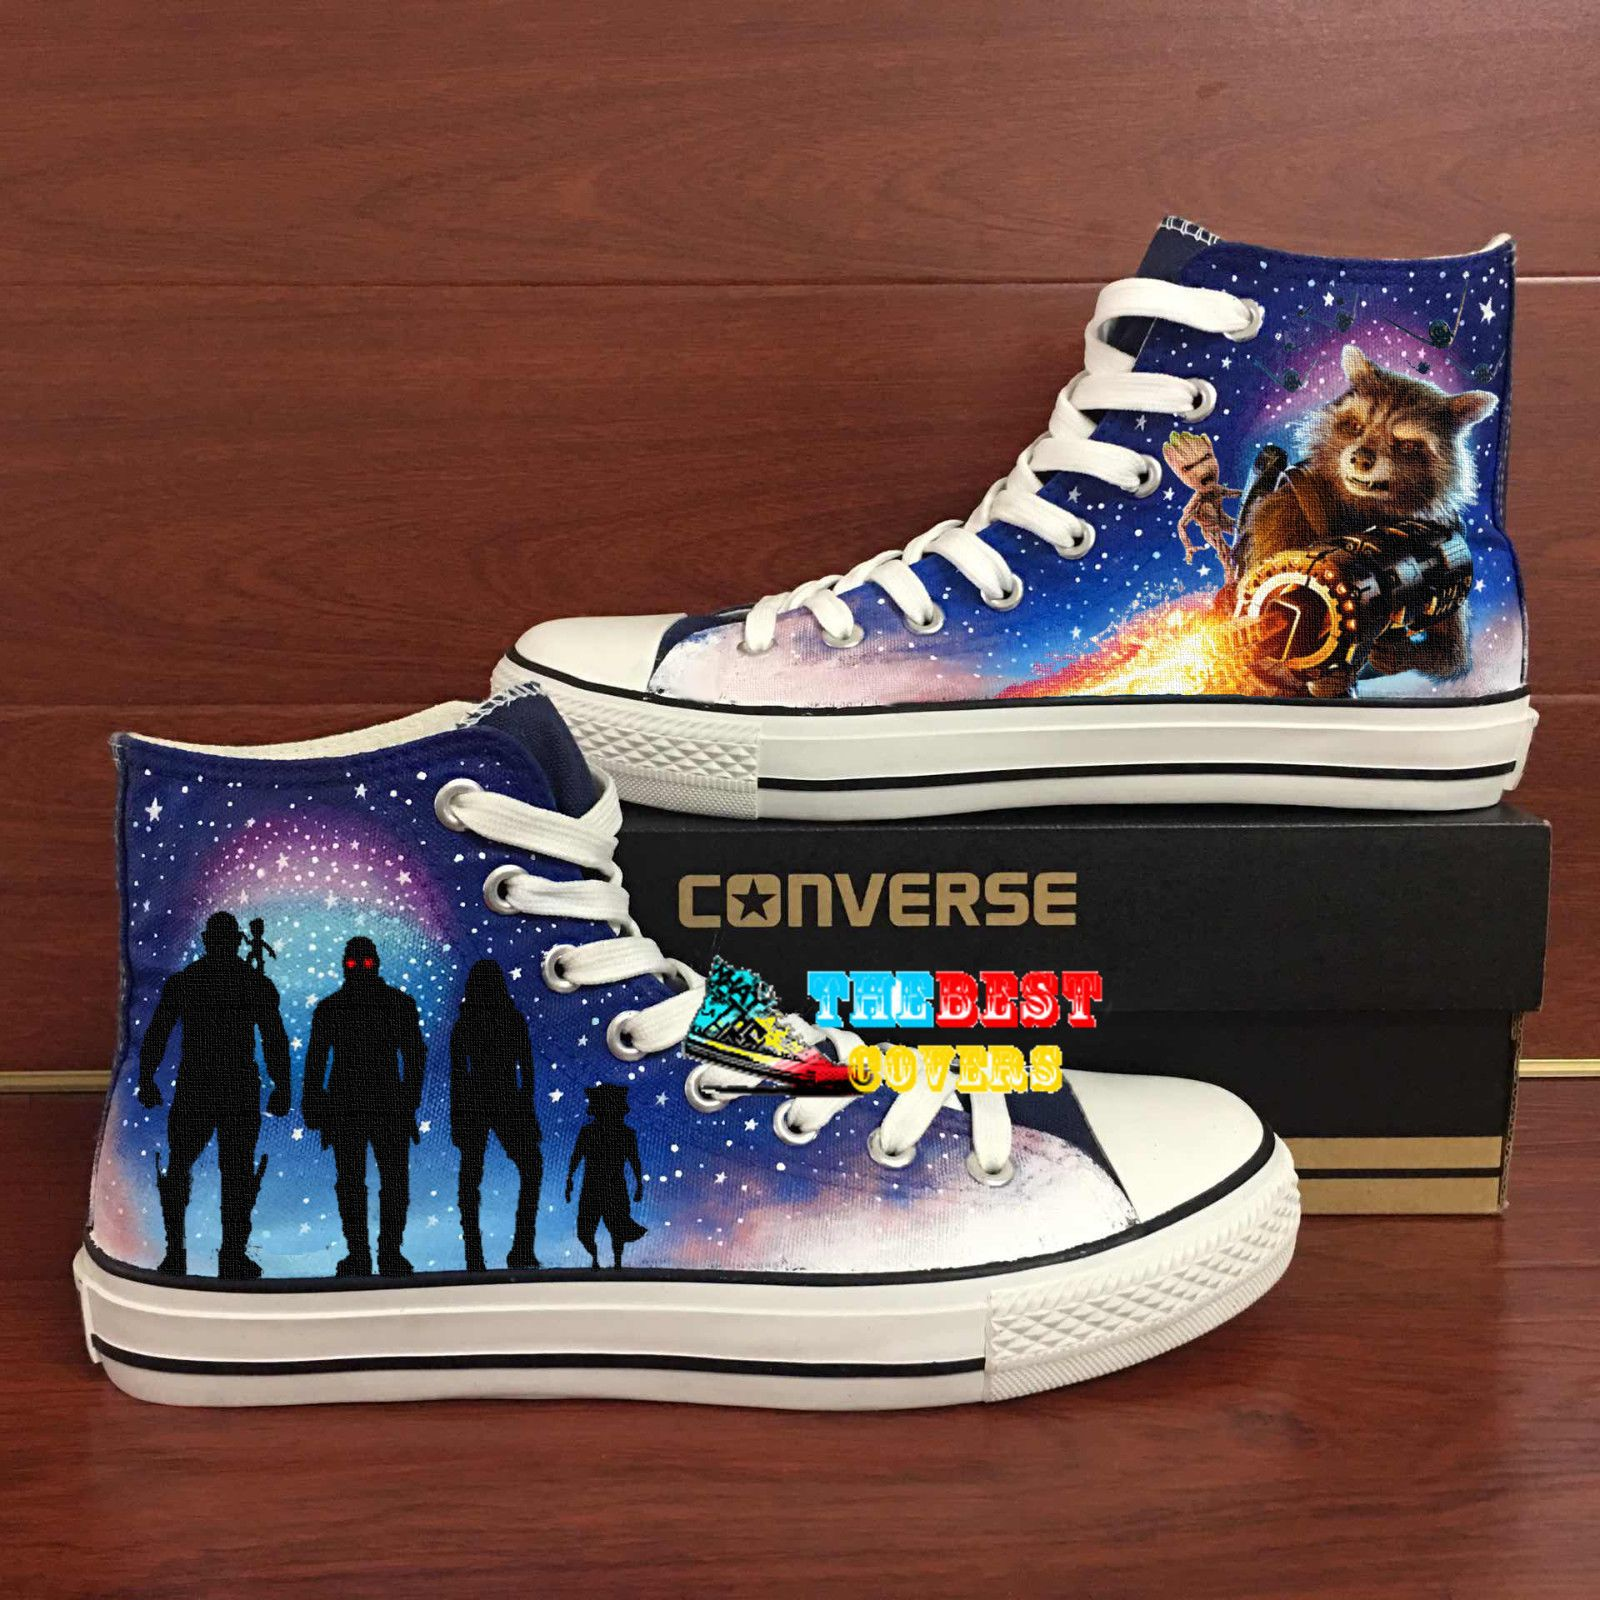 f209f7c82b244f CONVERSE All Star GUARDIANS OF THE GALAXY marvel movie hand painted shoes